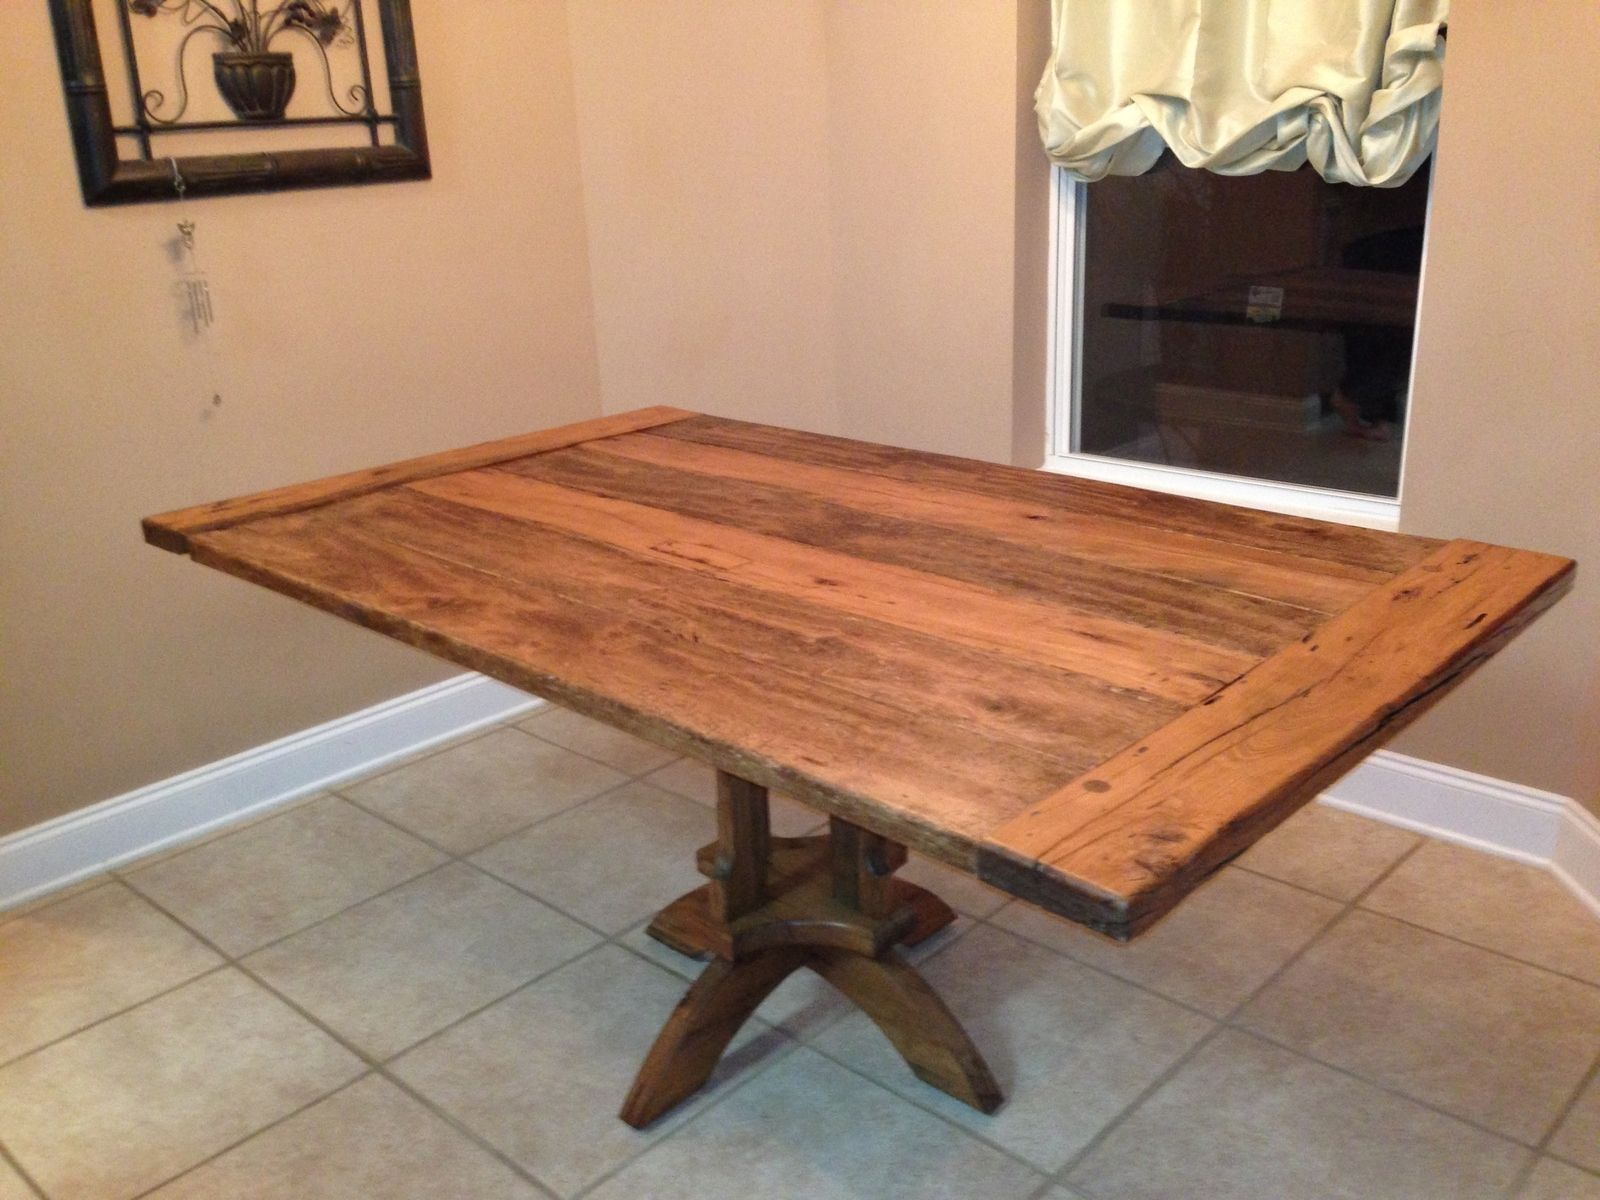 Copenhagen Amish Kitchen Table and Chairs - Handmade ...